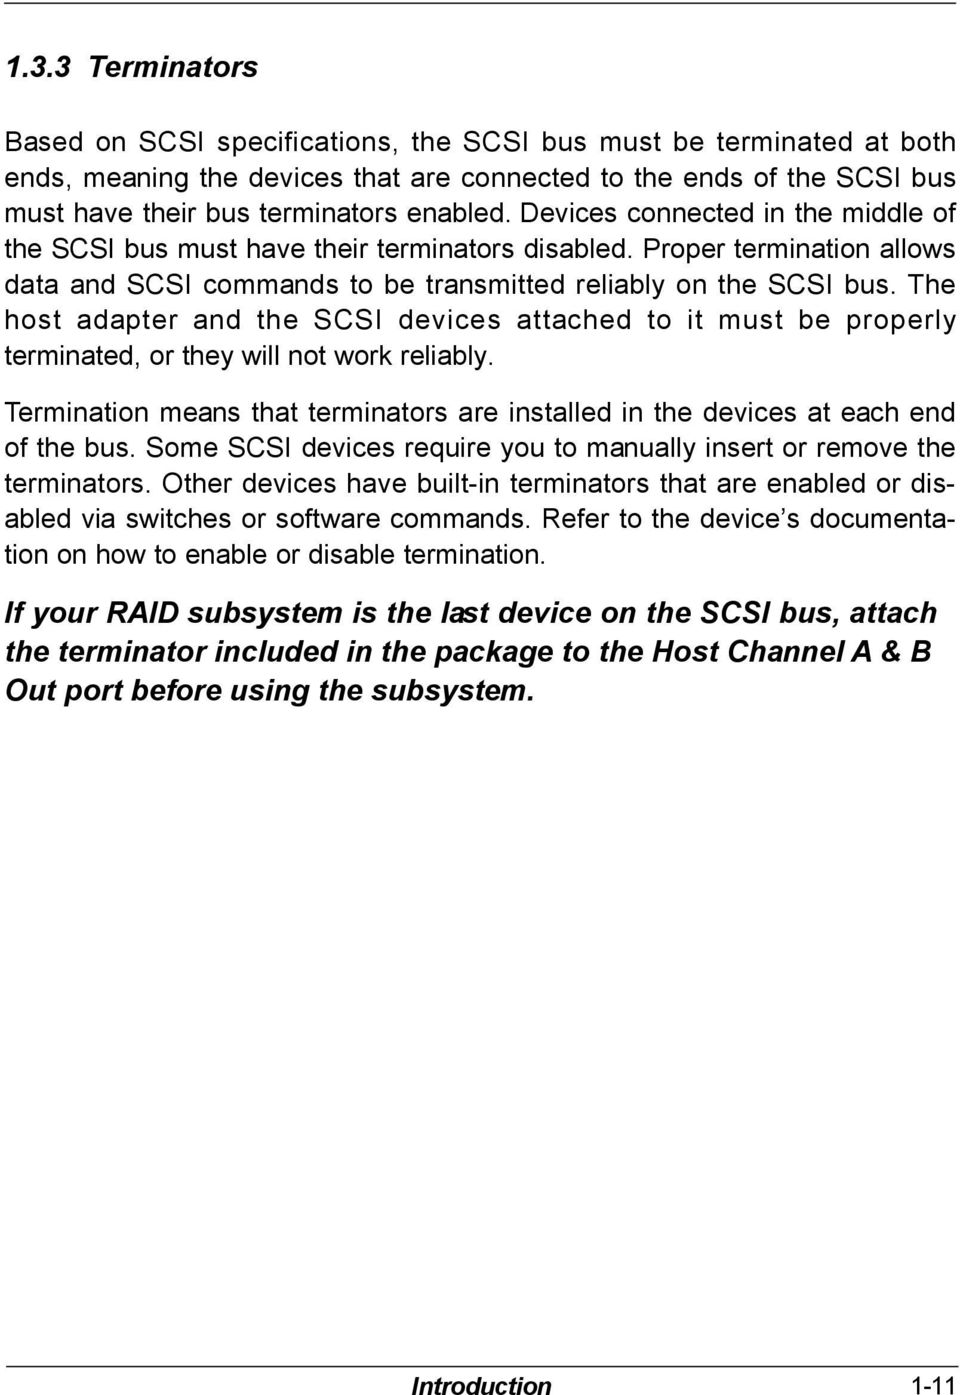 The host adapter and the SCSI devices attached to it must be properly terminated, or they will not work reliably.